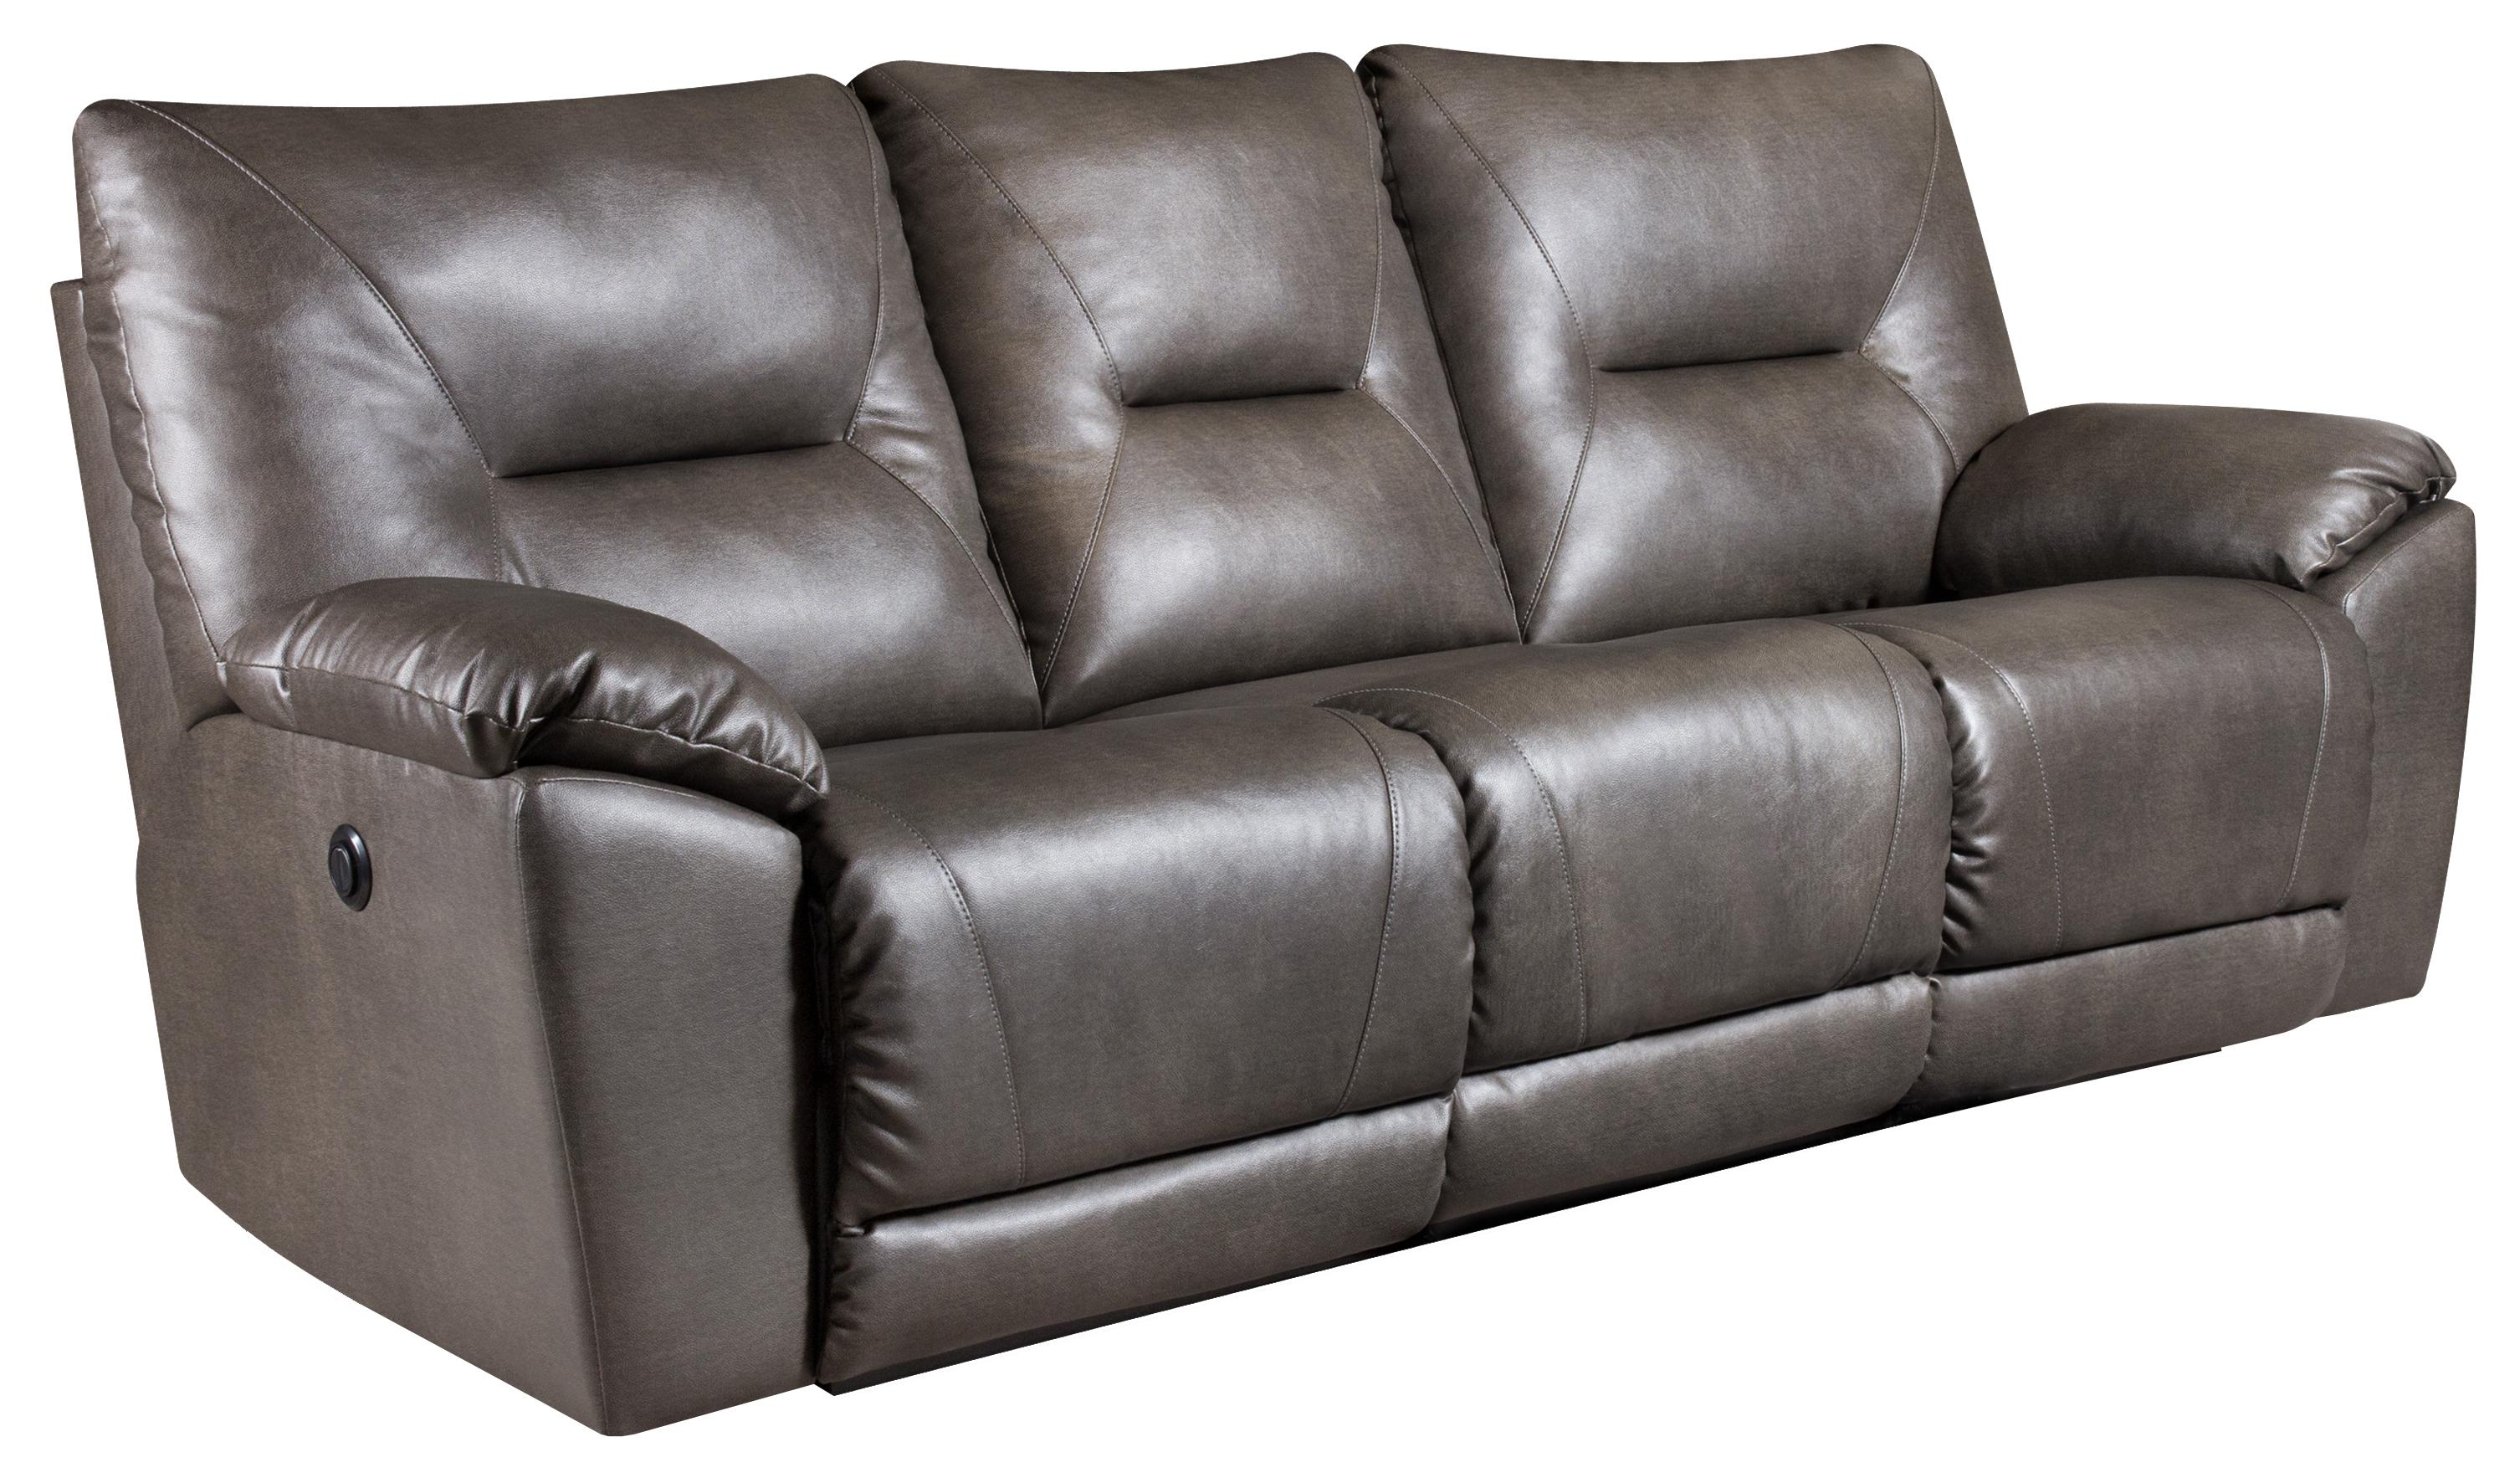 Southern Motion Dynamo Double Reclining Sofa  - Item Number: 590-31